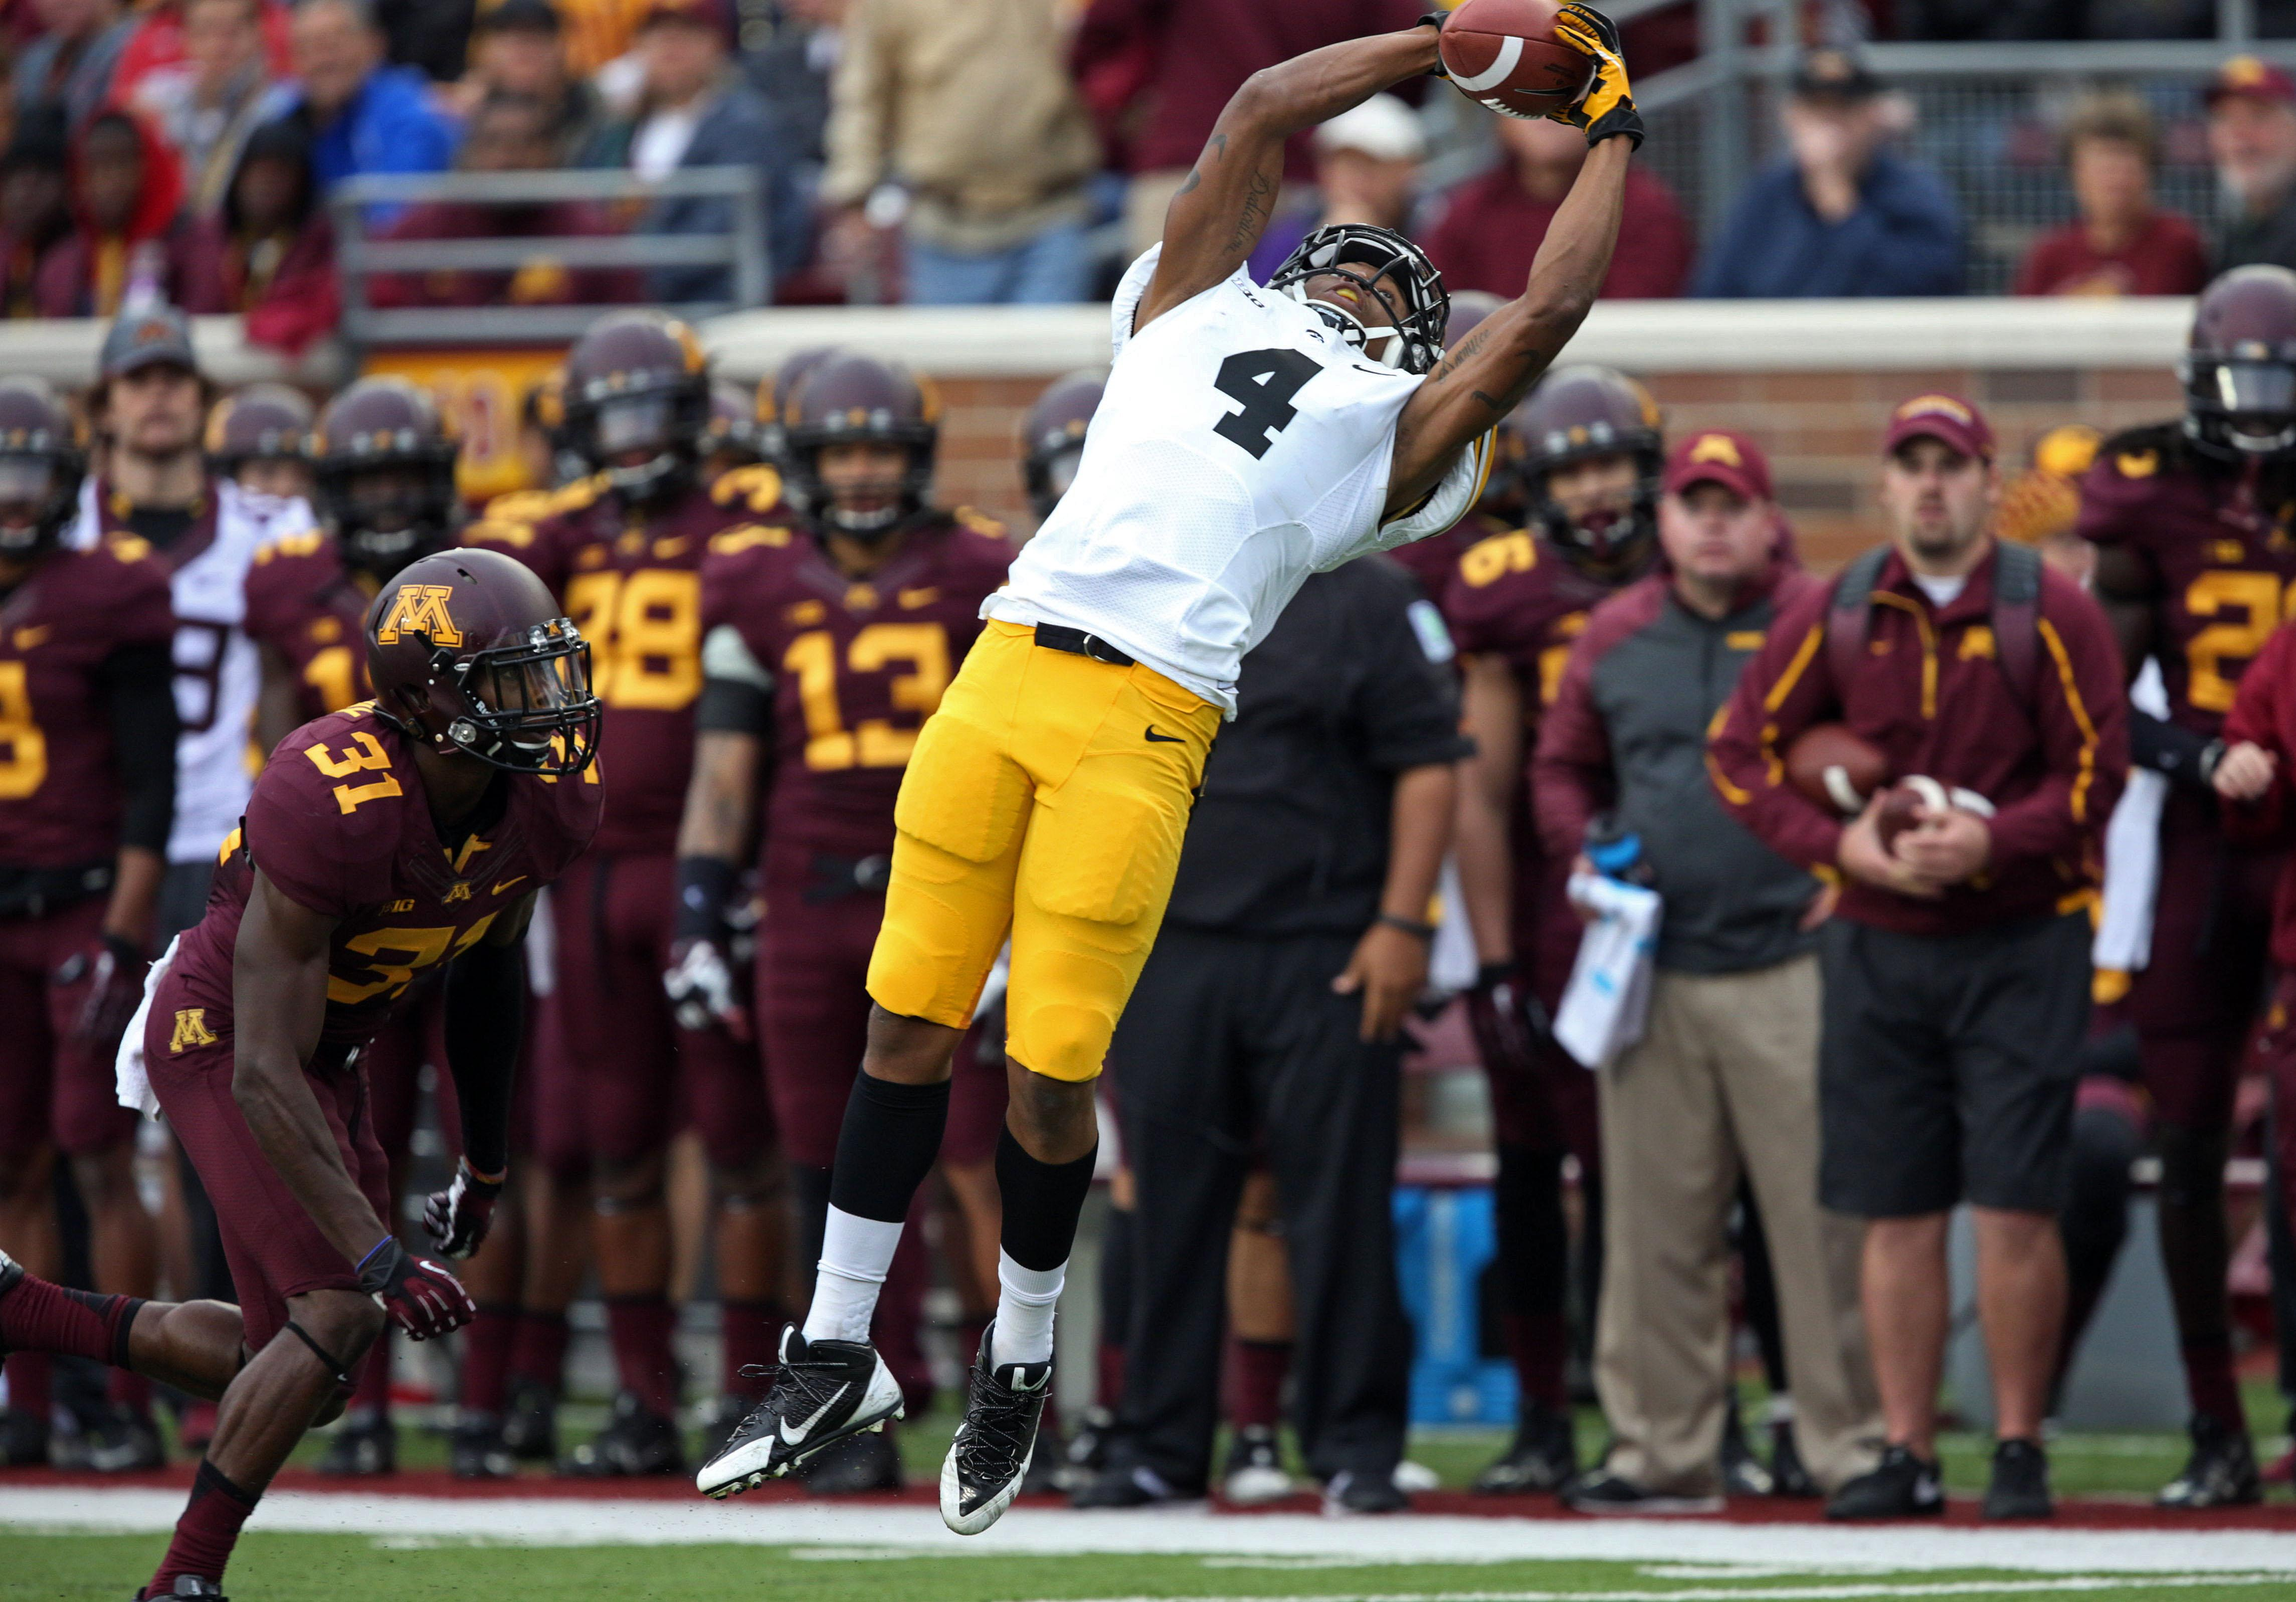 Iowa WR Tevaun Smith breaks Odell Beckham's one-handed catch record